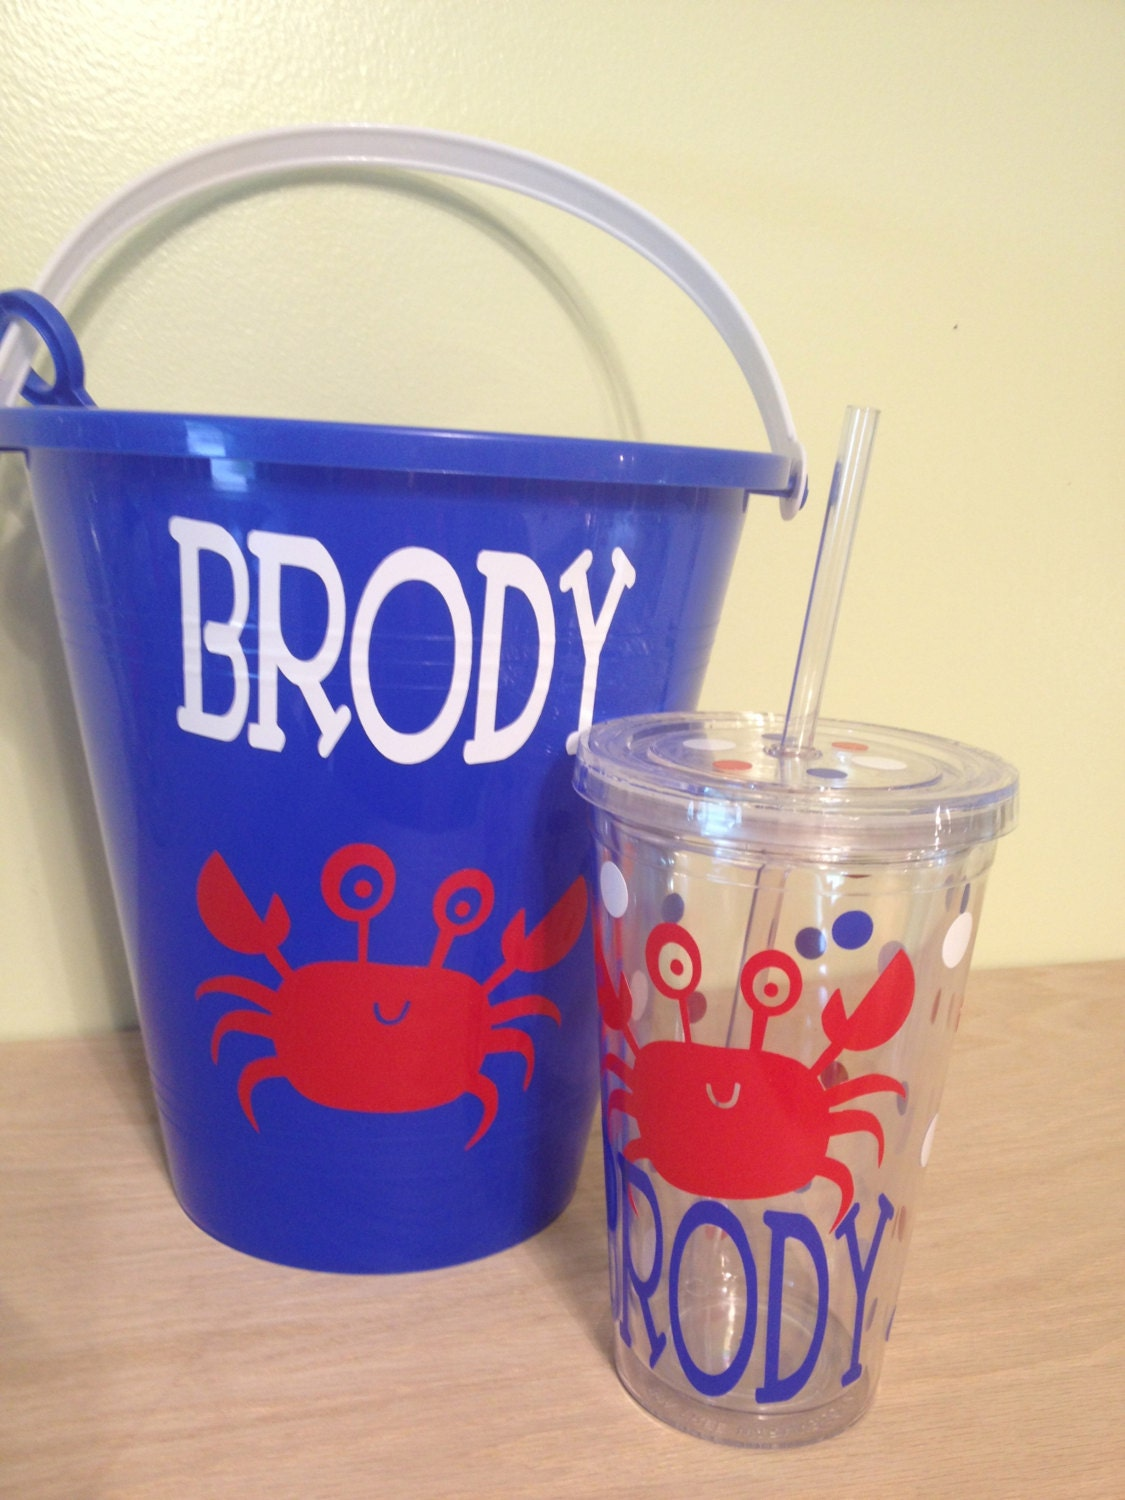 Do you need a ring bearer or flower girl gift idea? Definitely check out these cute personalized buckets that www.abrideonabudget.com wrote about.